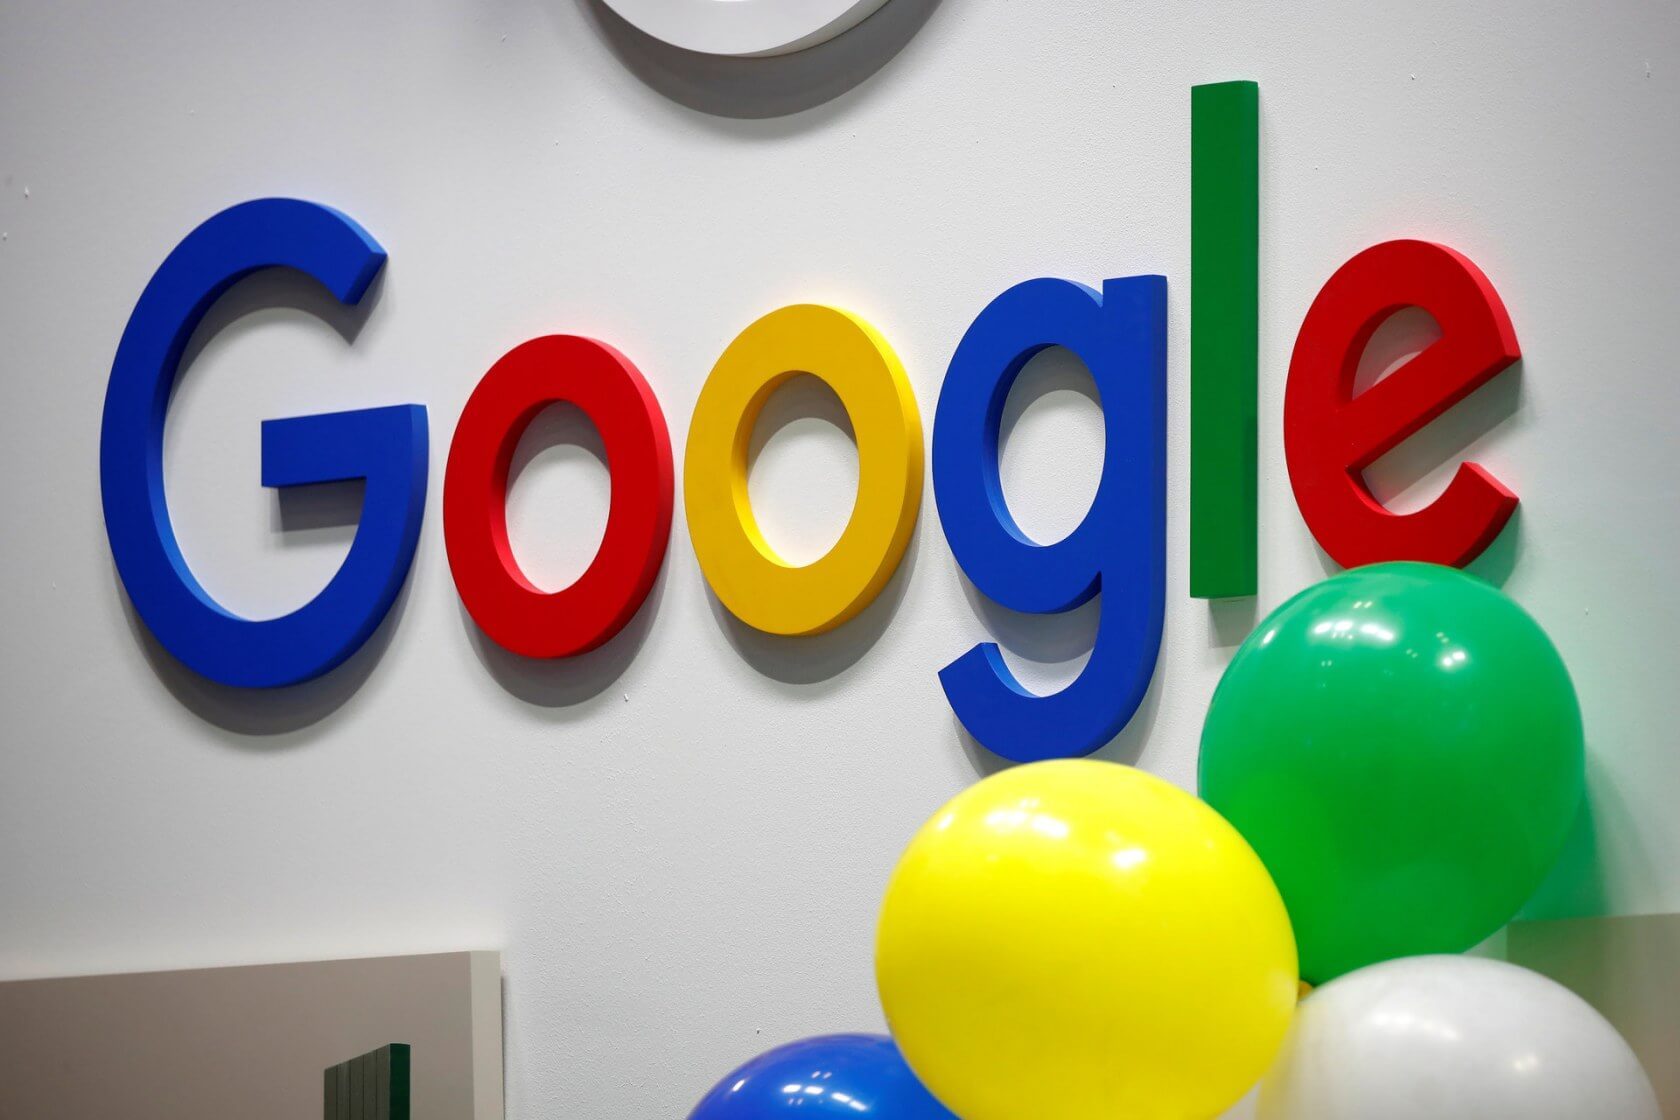 Android users will be able to access select Google services without